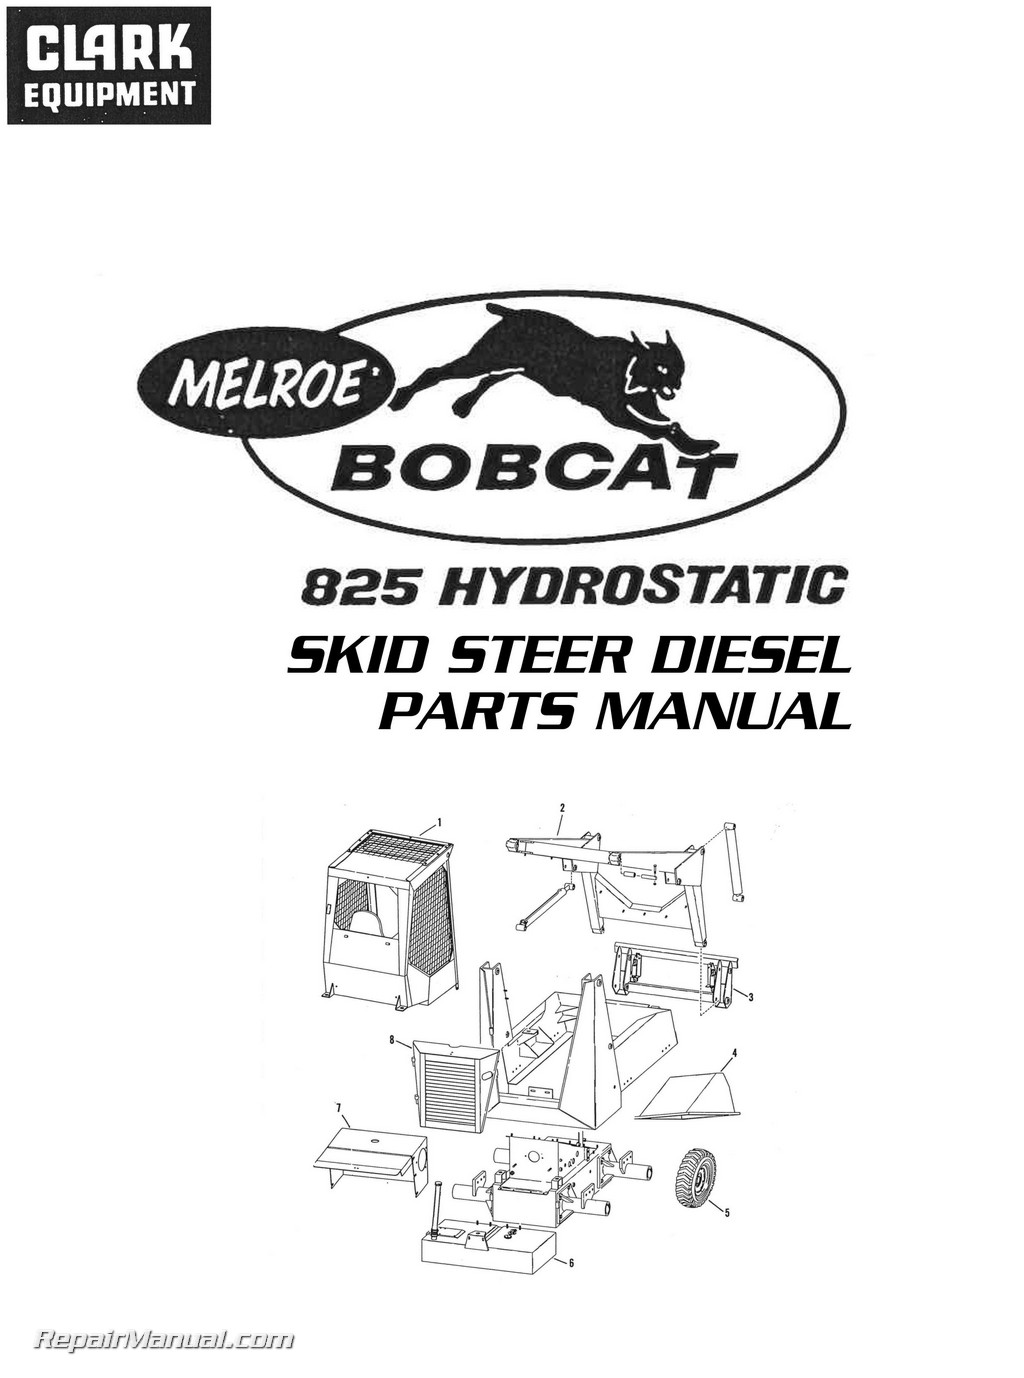 hight resolution of 1024x1378 clark bobcat 825 hydrostatic skid steer diesel parts manual